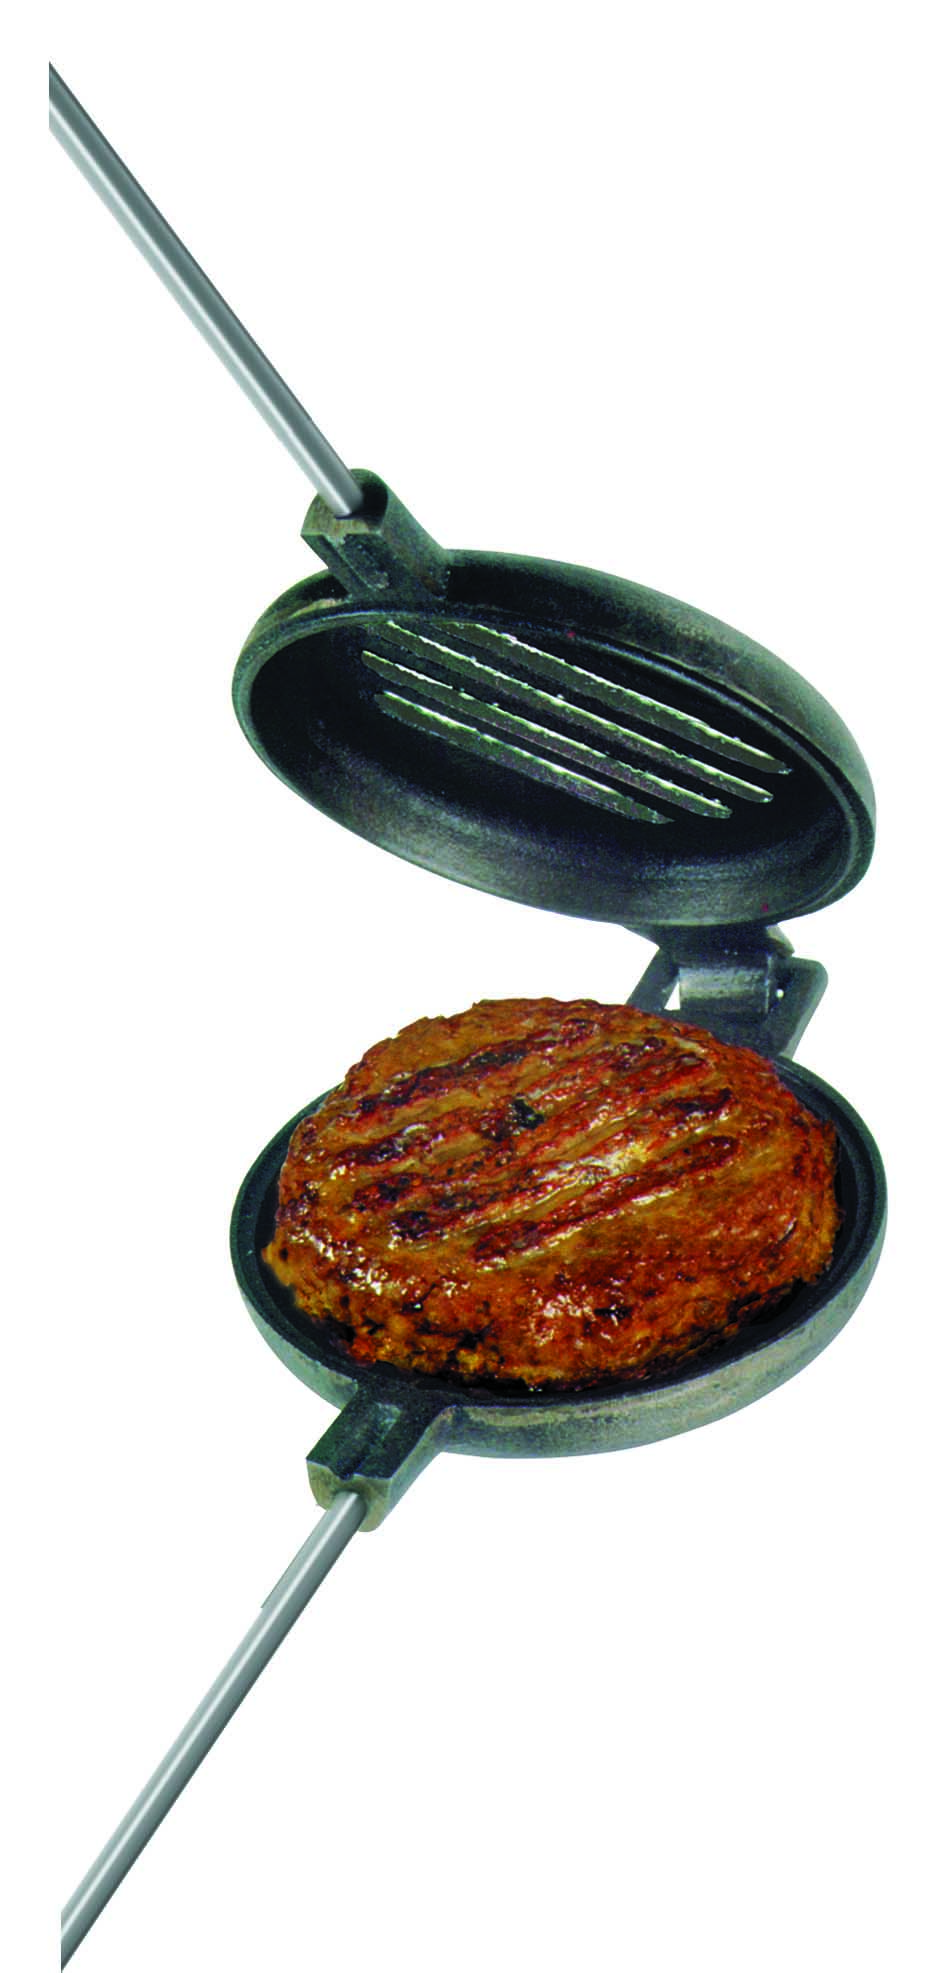 How To Cook Hamburger On Cast Iron